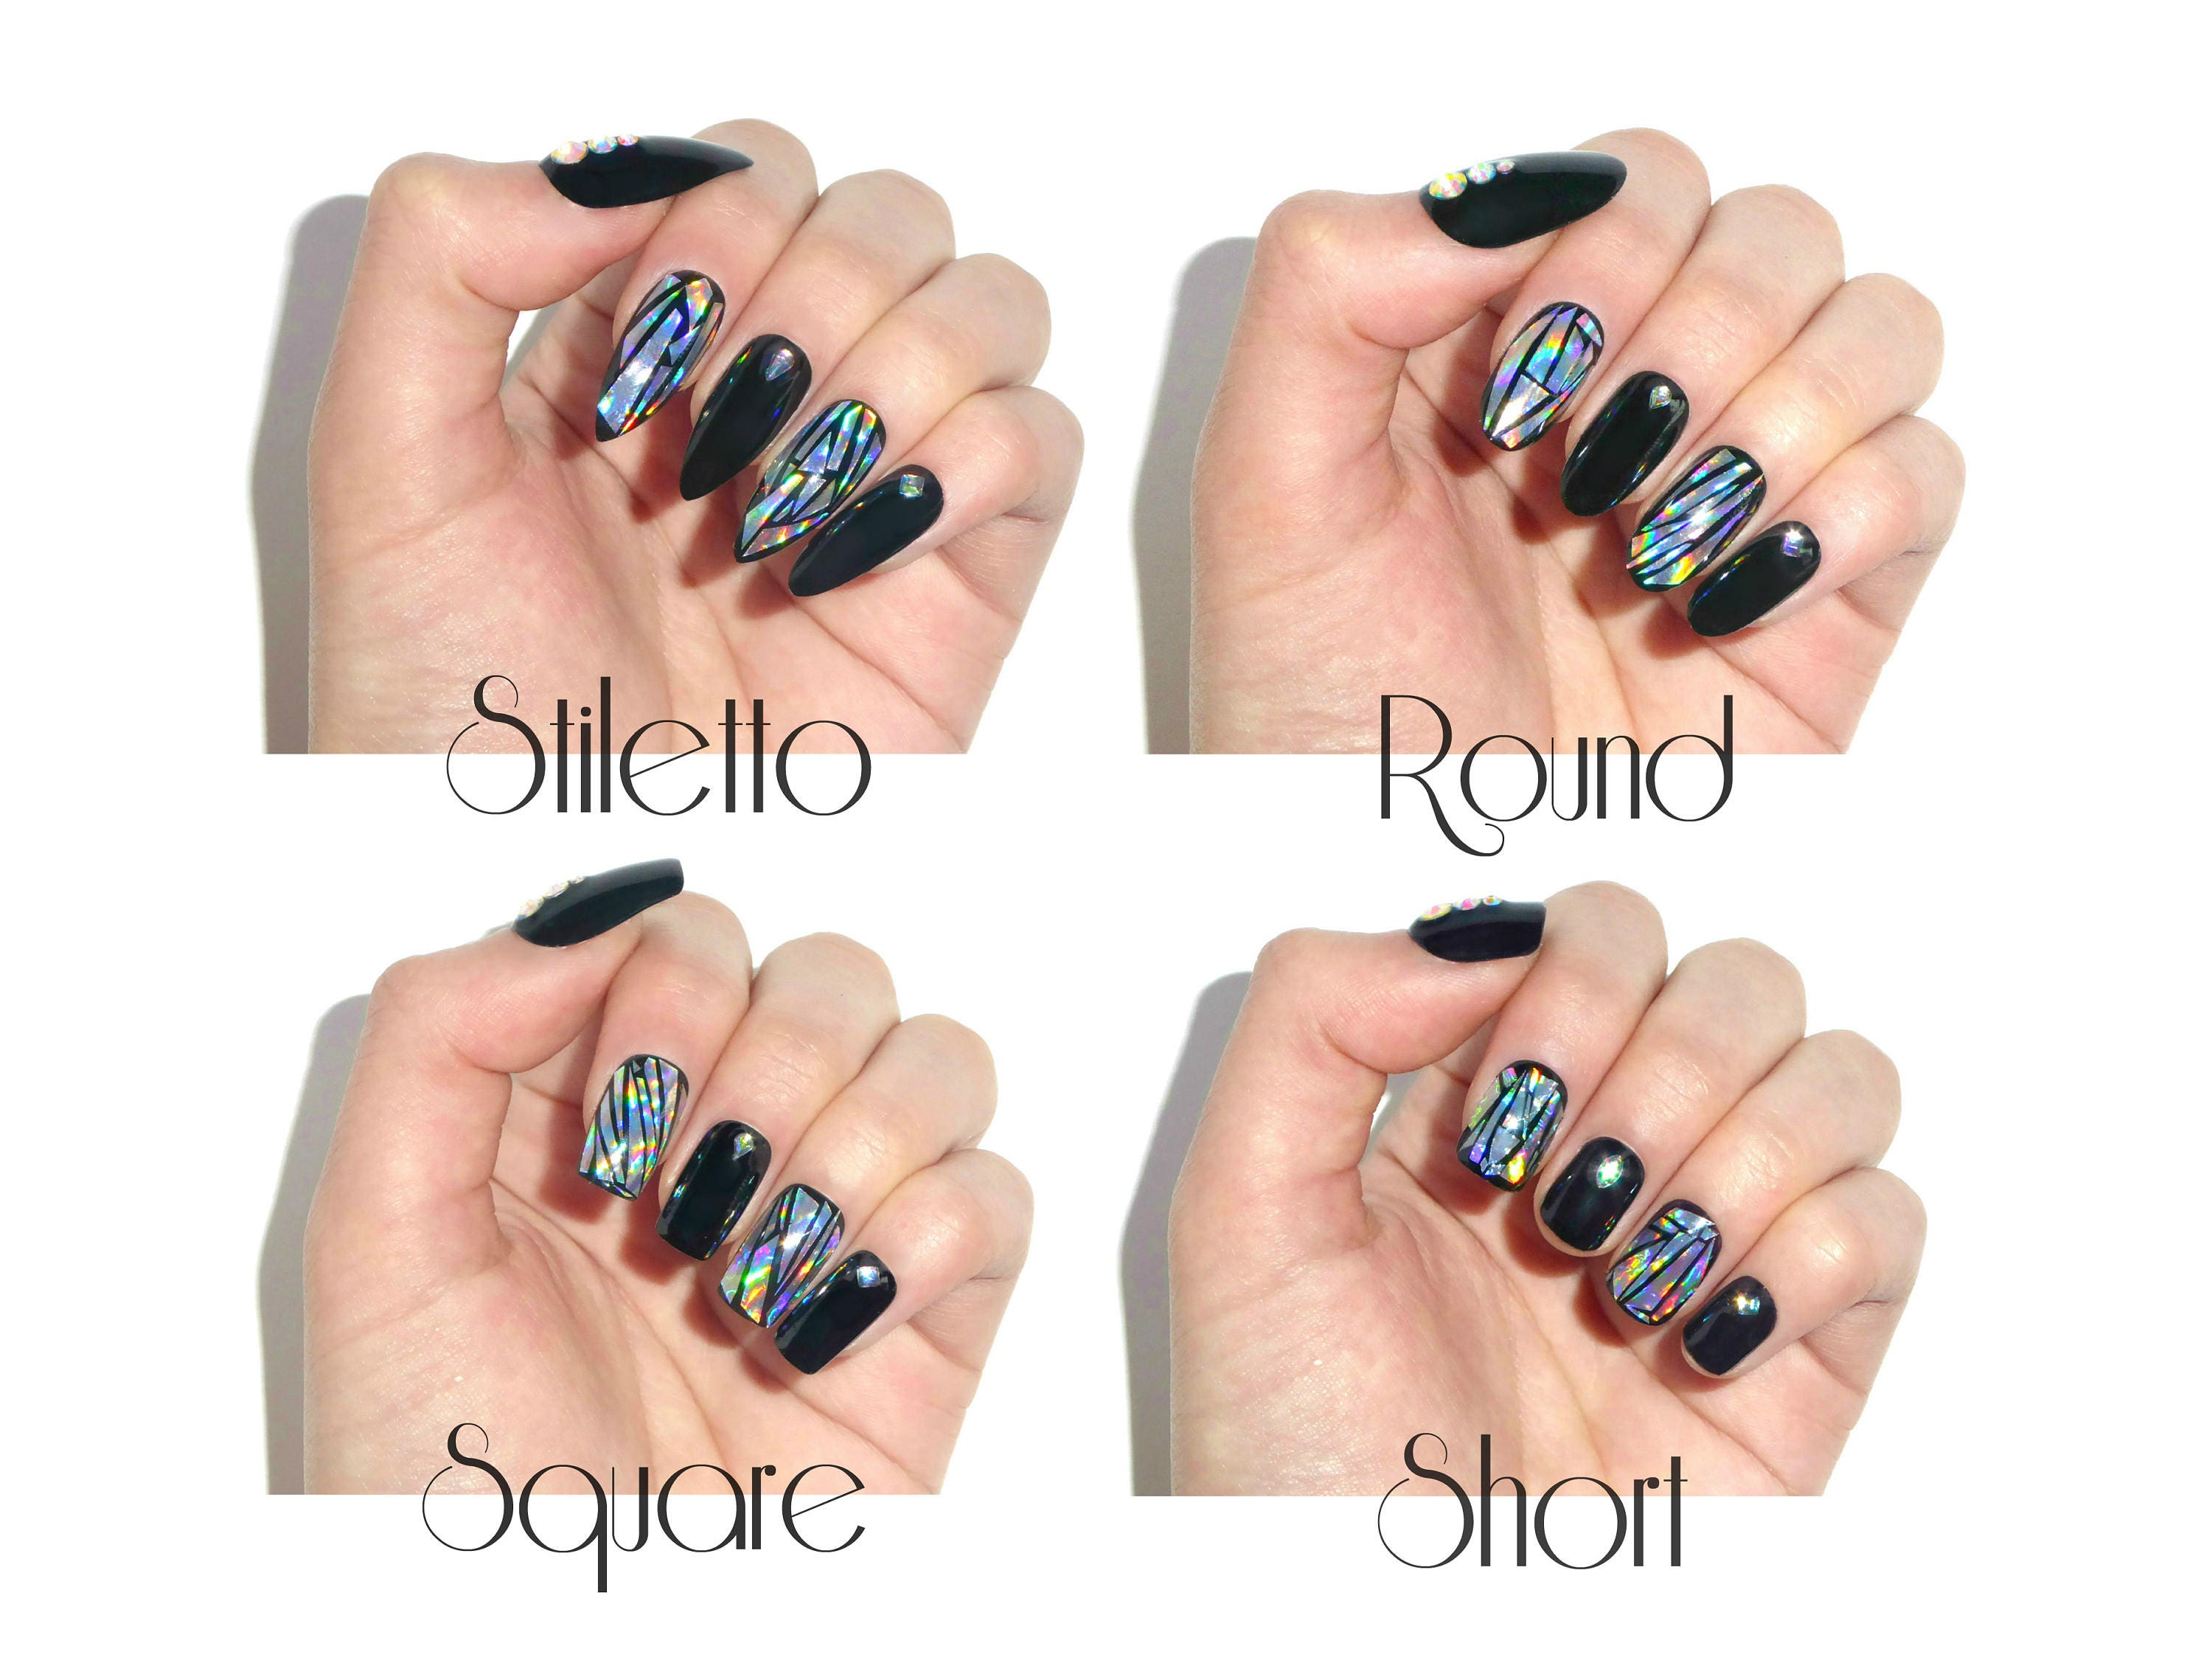 Holographic Jewelry Nails / Fake nails, glue on nails, press on ...